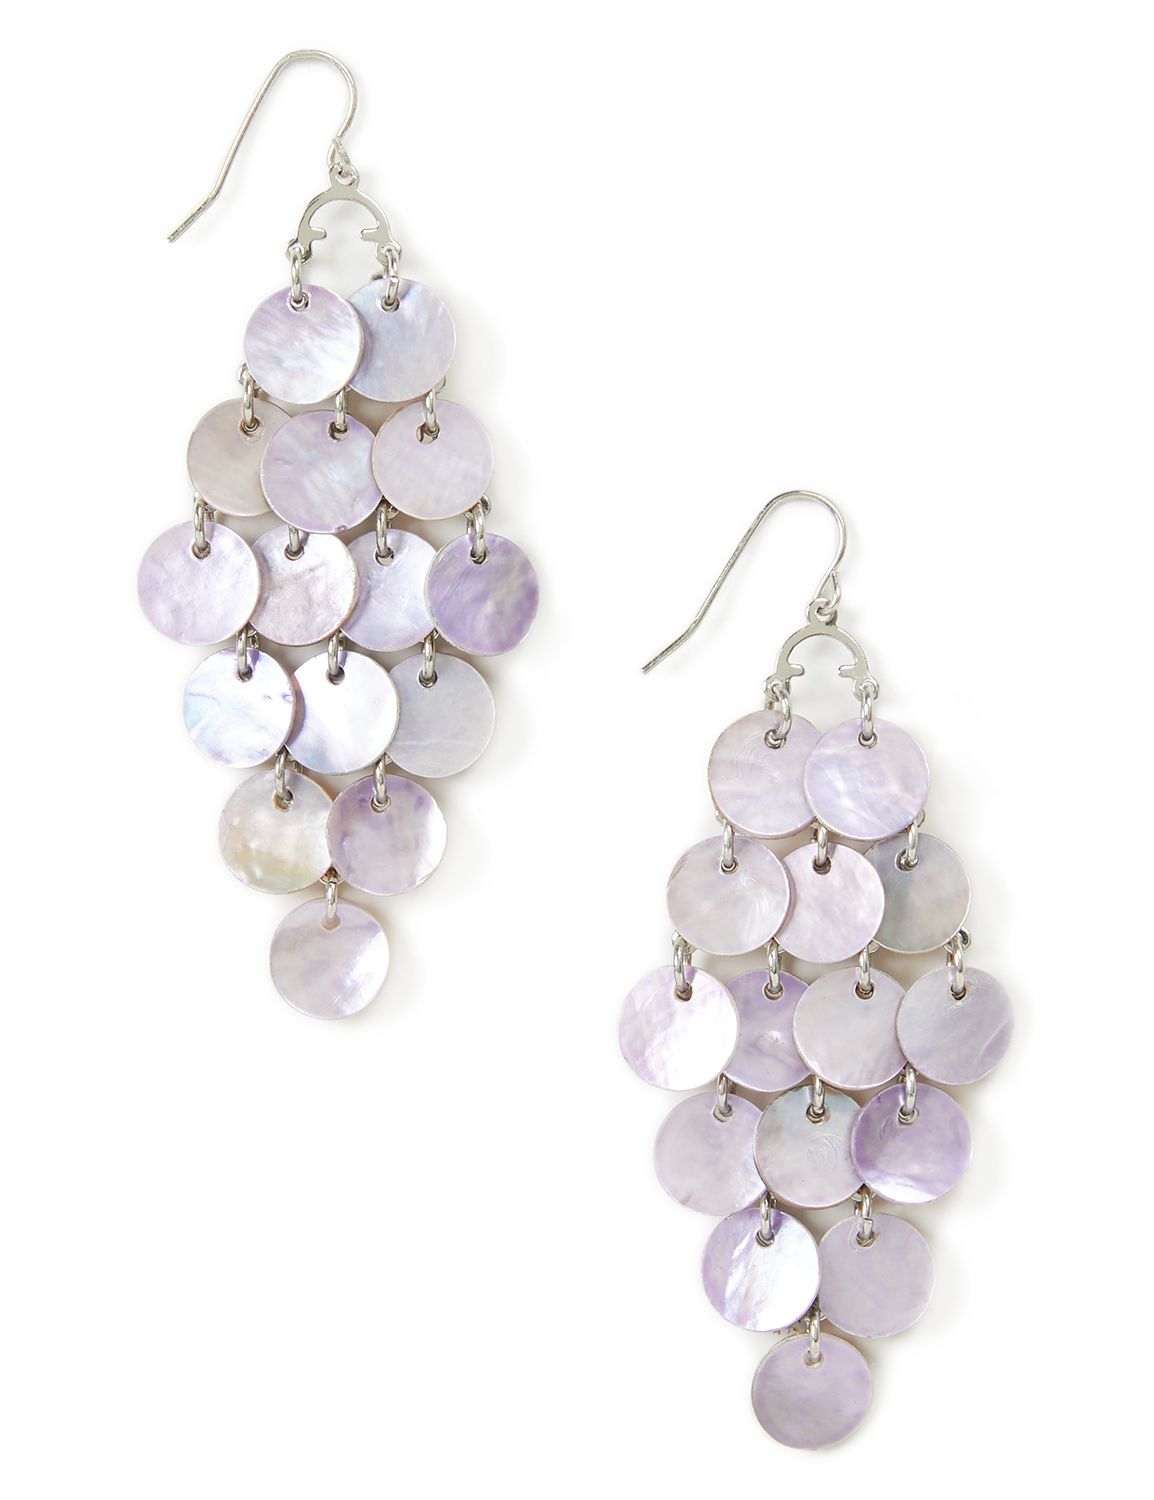 Cascading Chandelier Earrings LM shell drop PE KT0721E161 MP-300099922